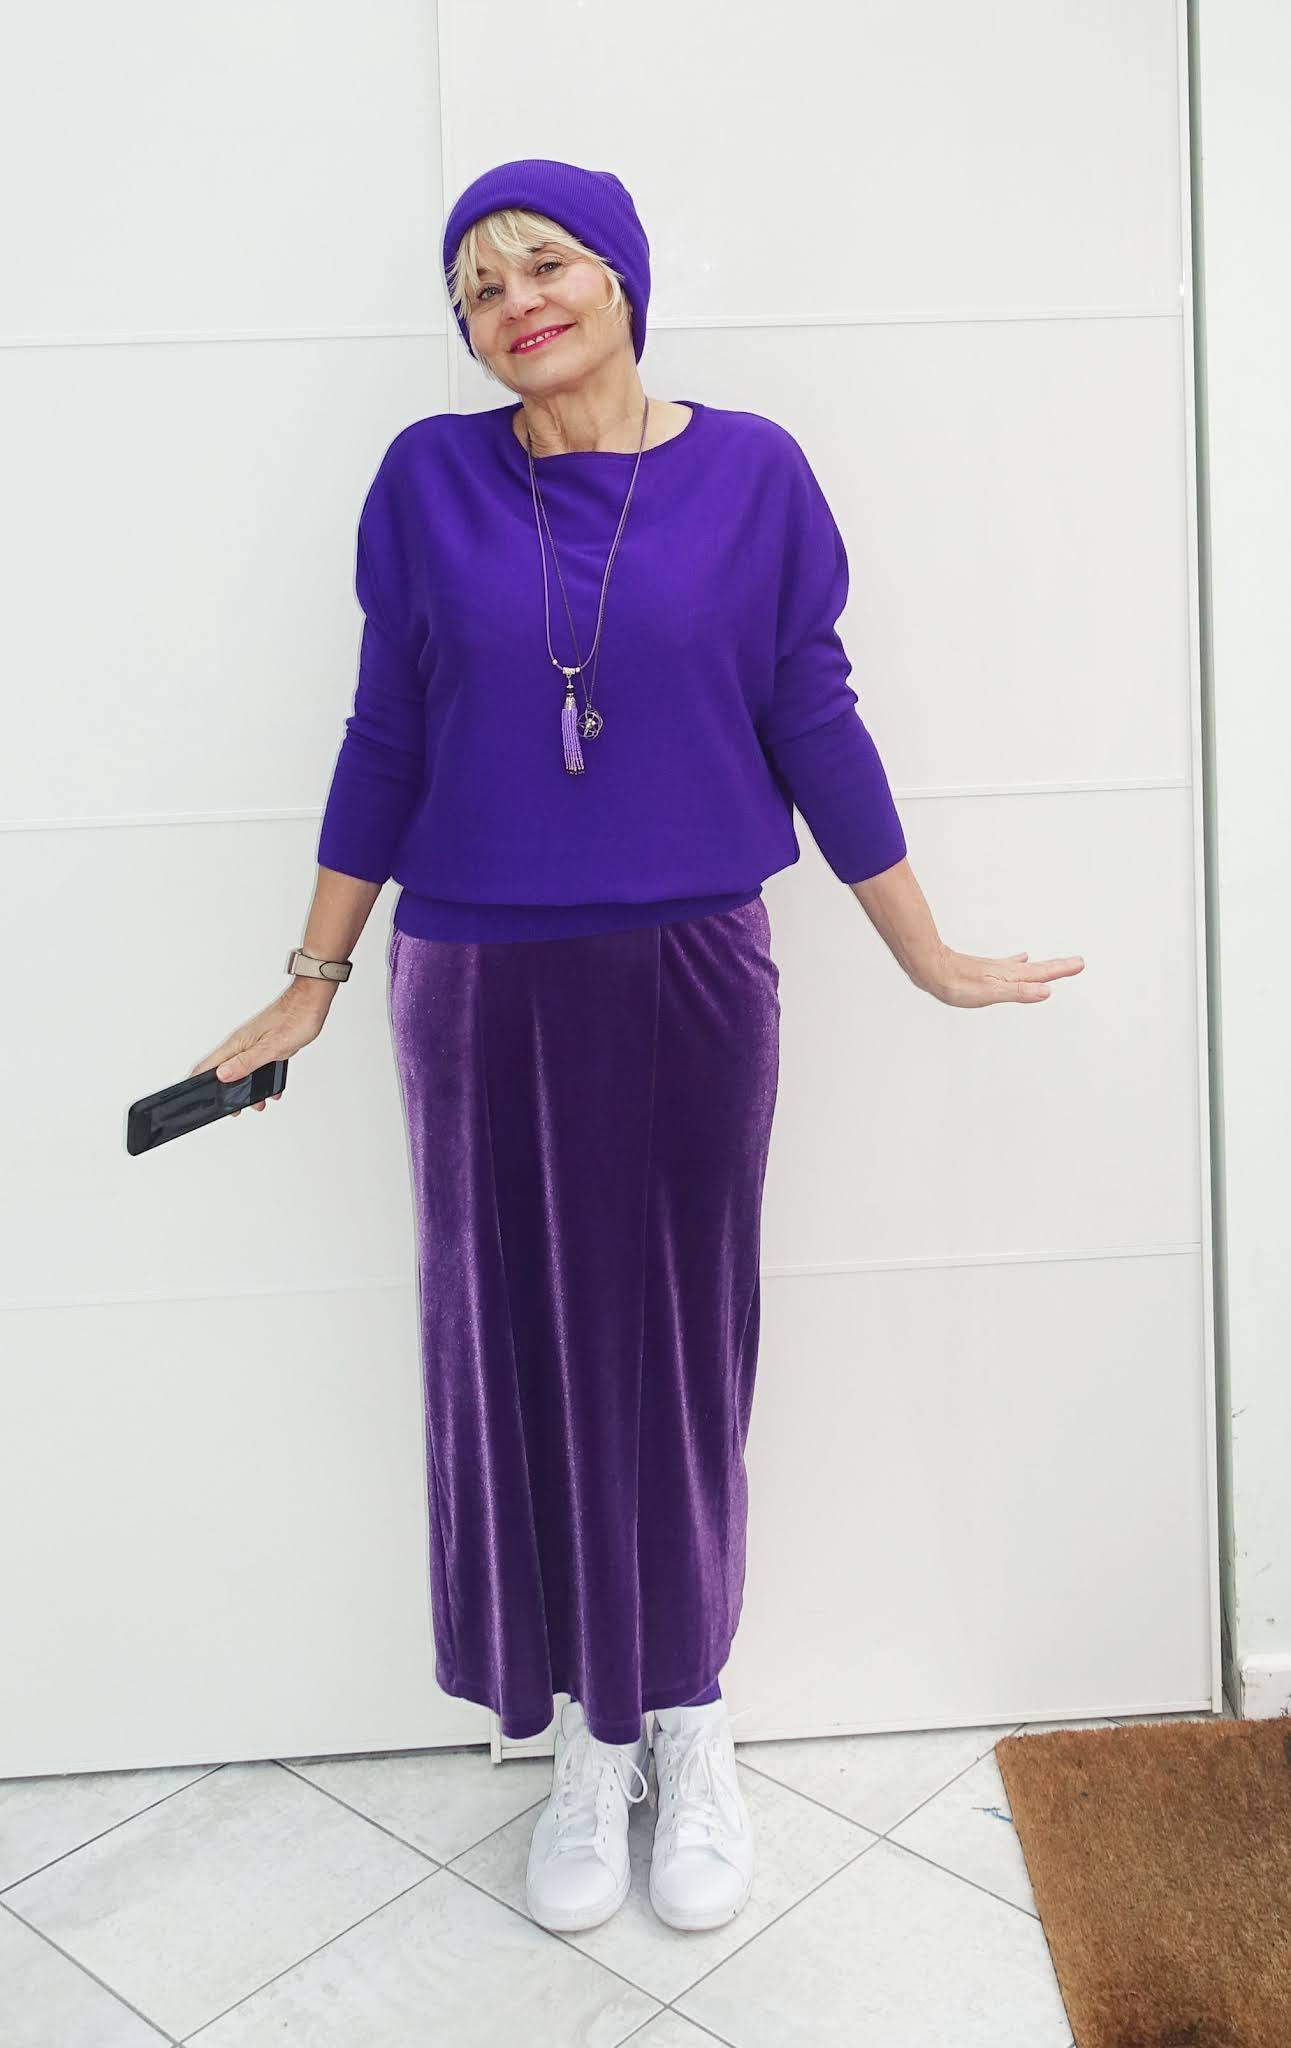 A dressed-down look for a velvet skirt for Is This Mutton style blogger Gail Hanlon as she creates a monochrome purple outfit with white trainers